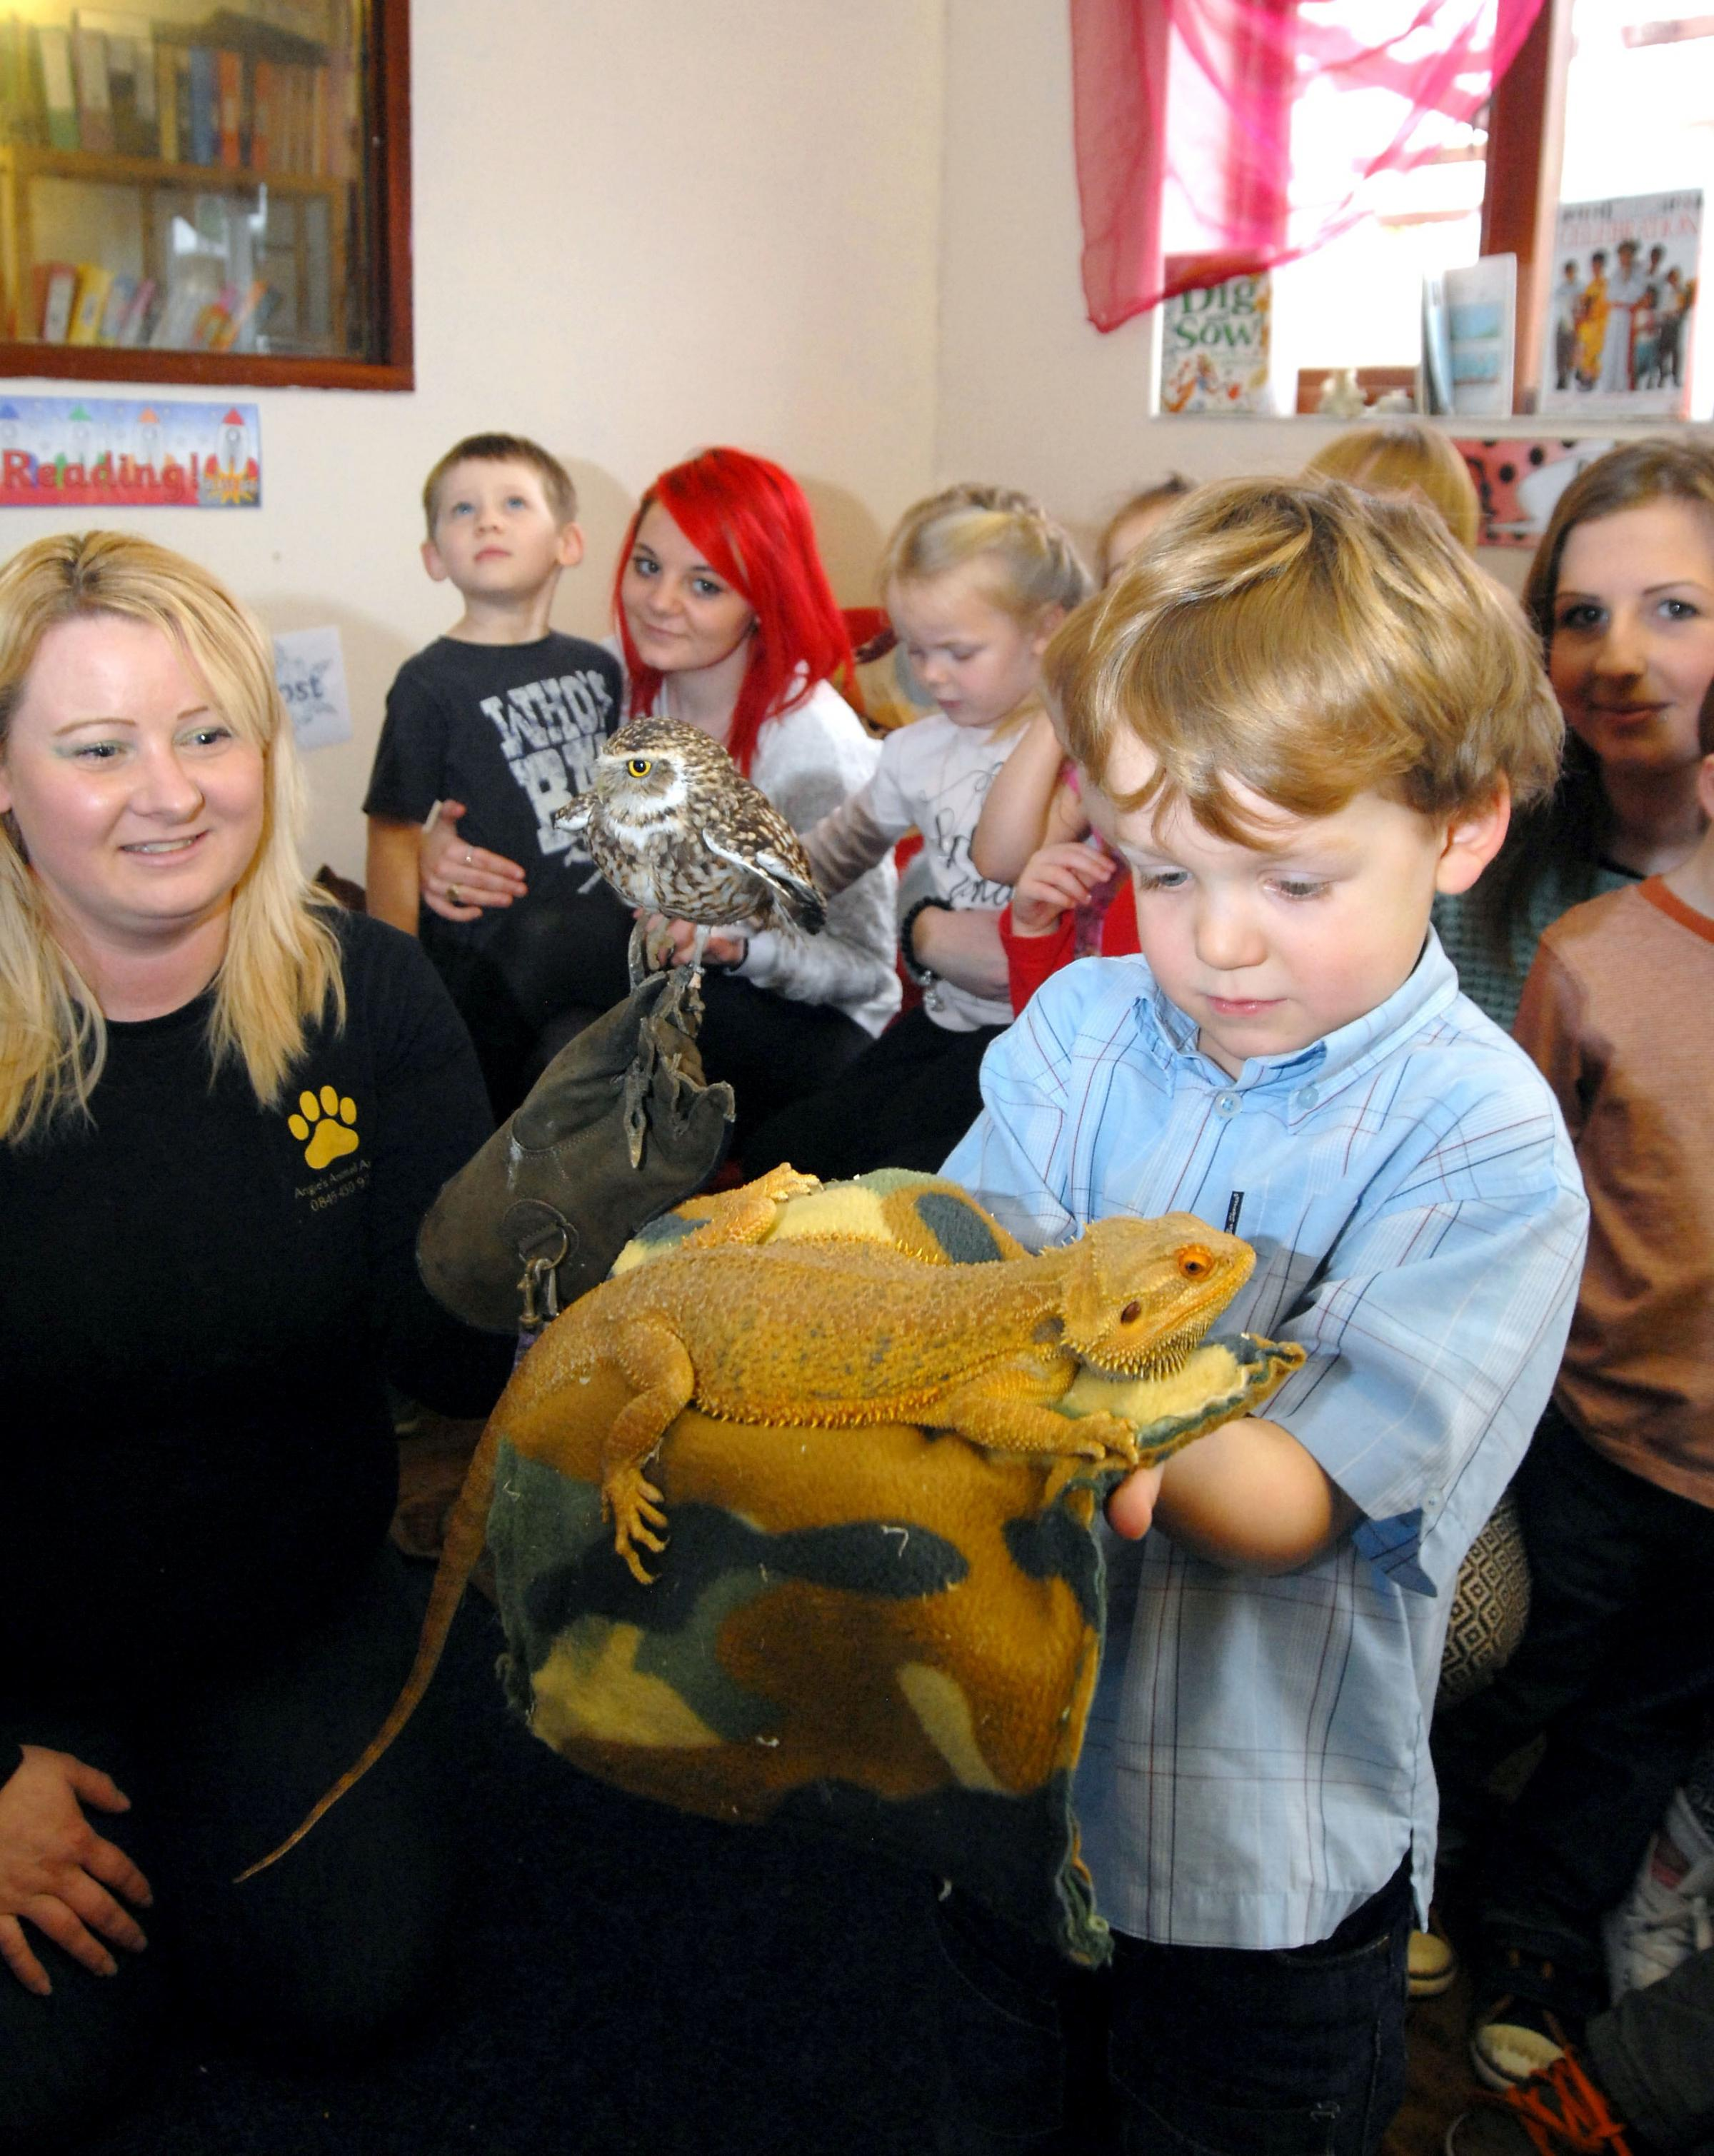 Angie Blake, Bizet the owl, Taz the dragon lizard and Matthew Yeomans, aged three. Buy this photo: 071428M.